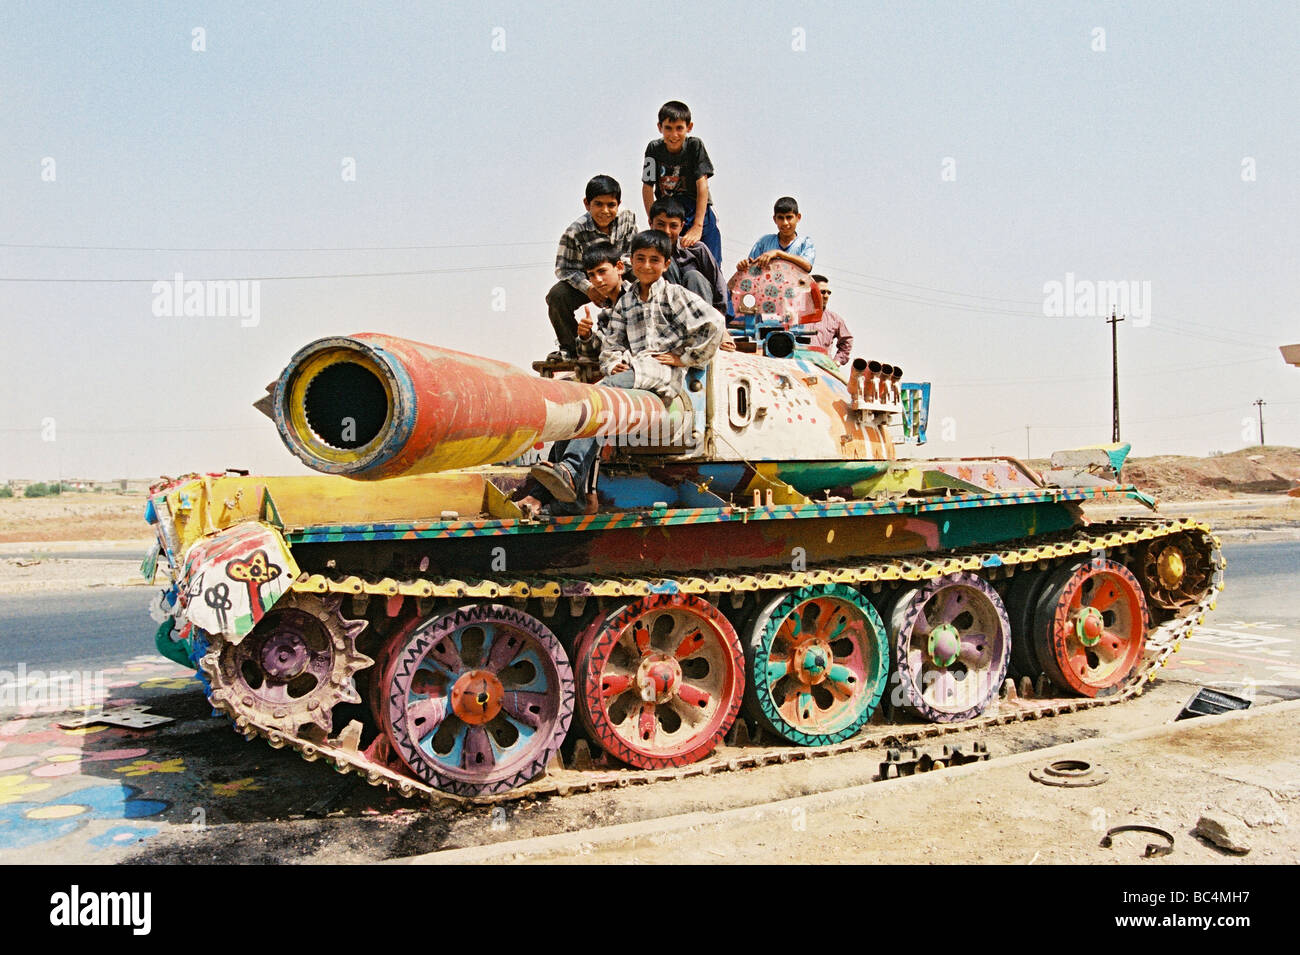 Kurdish children from Kirkuk sit atop a damaged Iraqi T-62 battle tank that is painted and covered in graffiti, - Stock Image